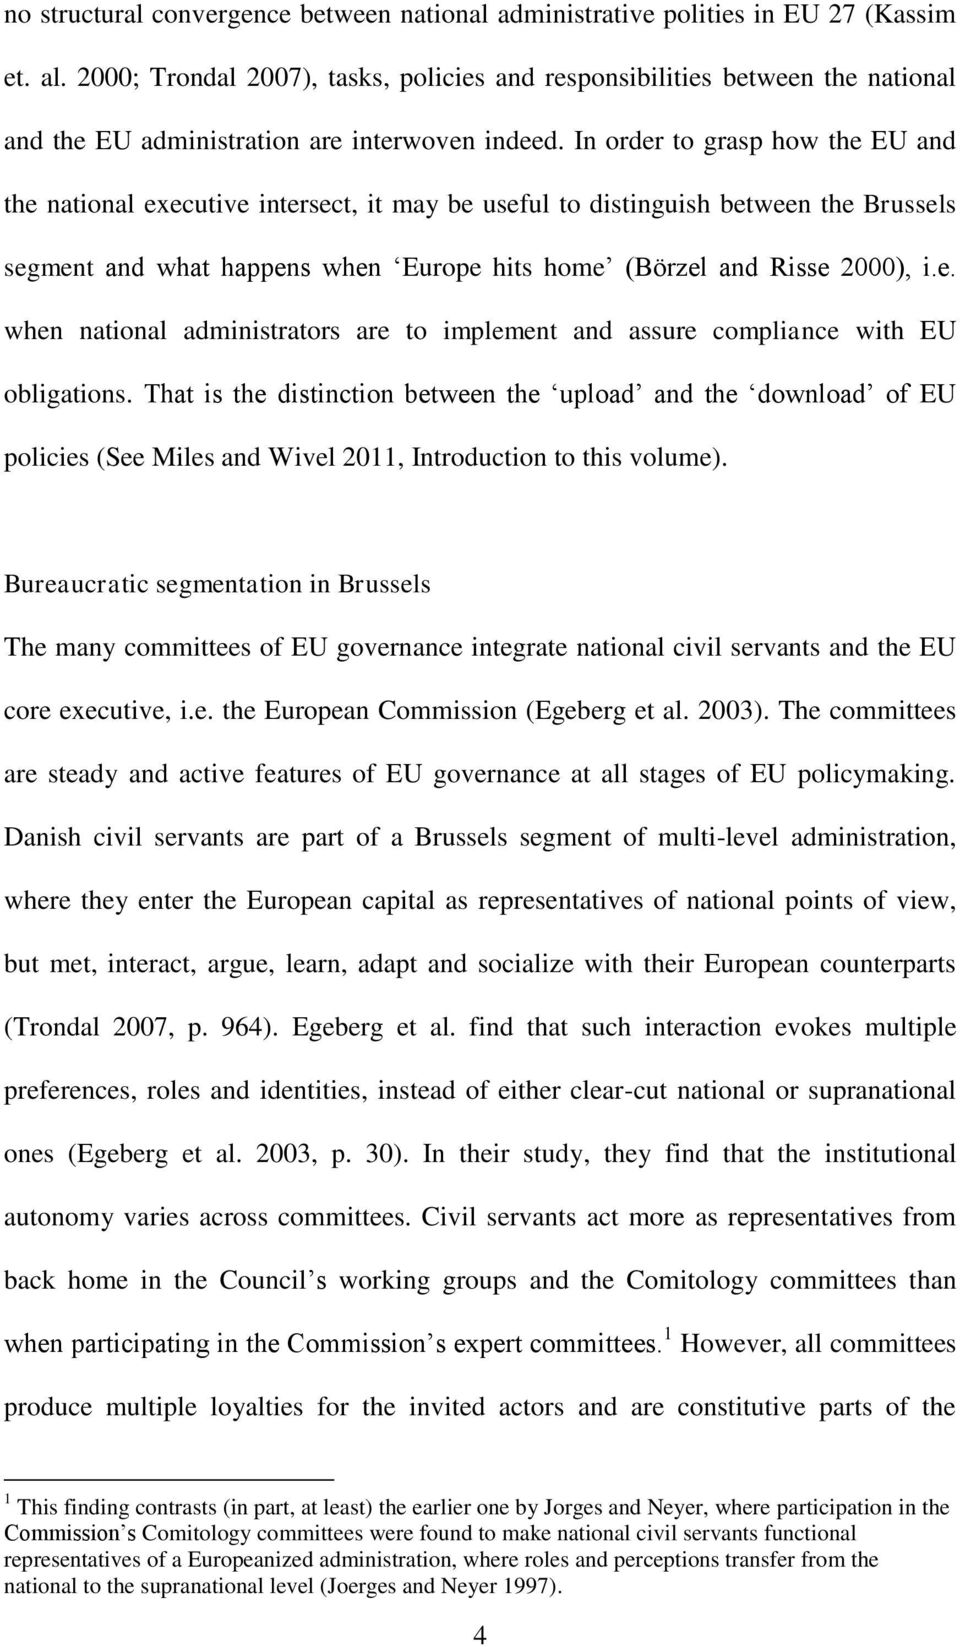 In order to grasp how the EU and the national executive intersect, it may be useful to distinguish between the Brussels segment and what happens when Europe hits home (Börzel and Risse 2000), i.e. when national administrators are to implement and assure compliance with EU obligations.